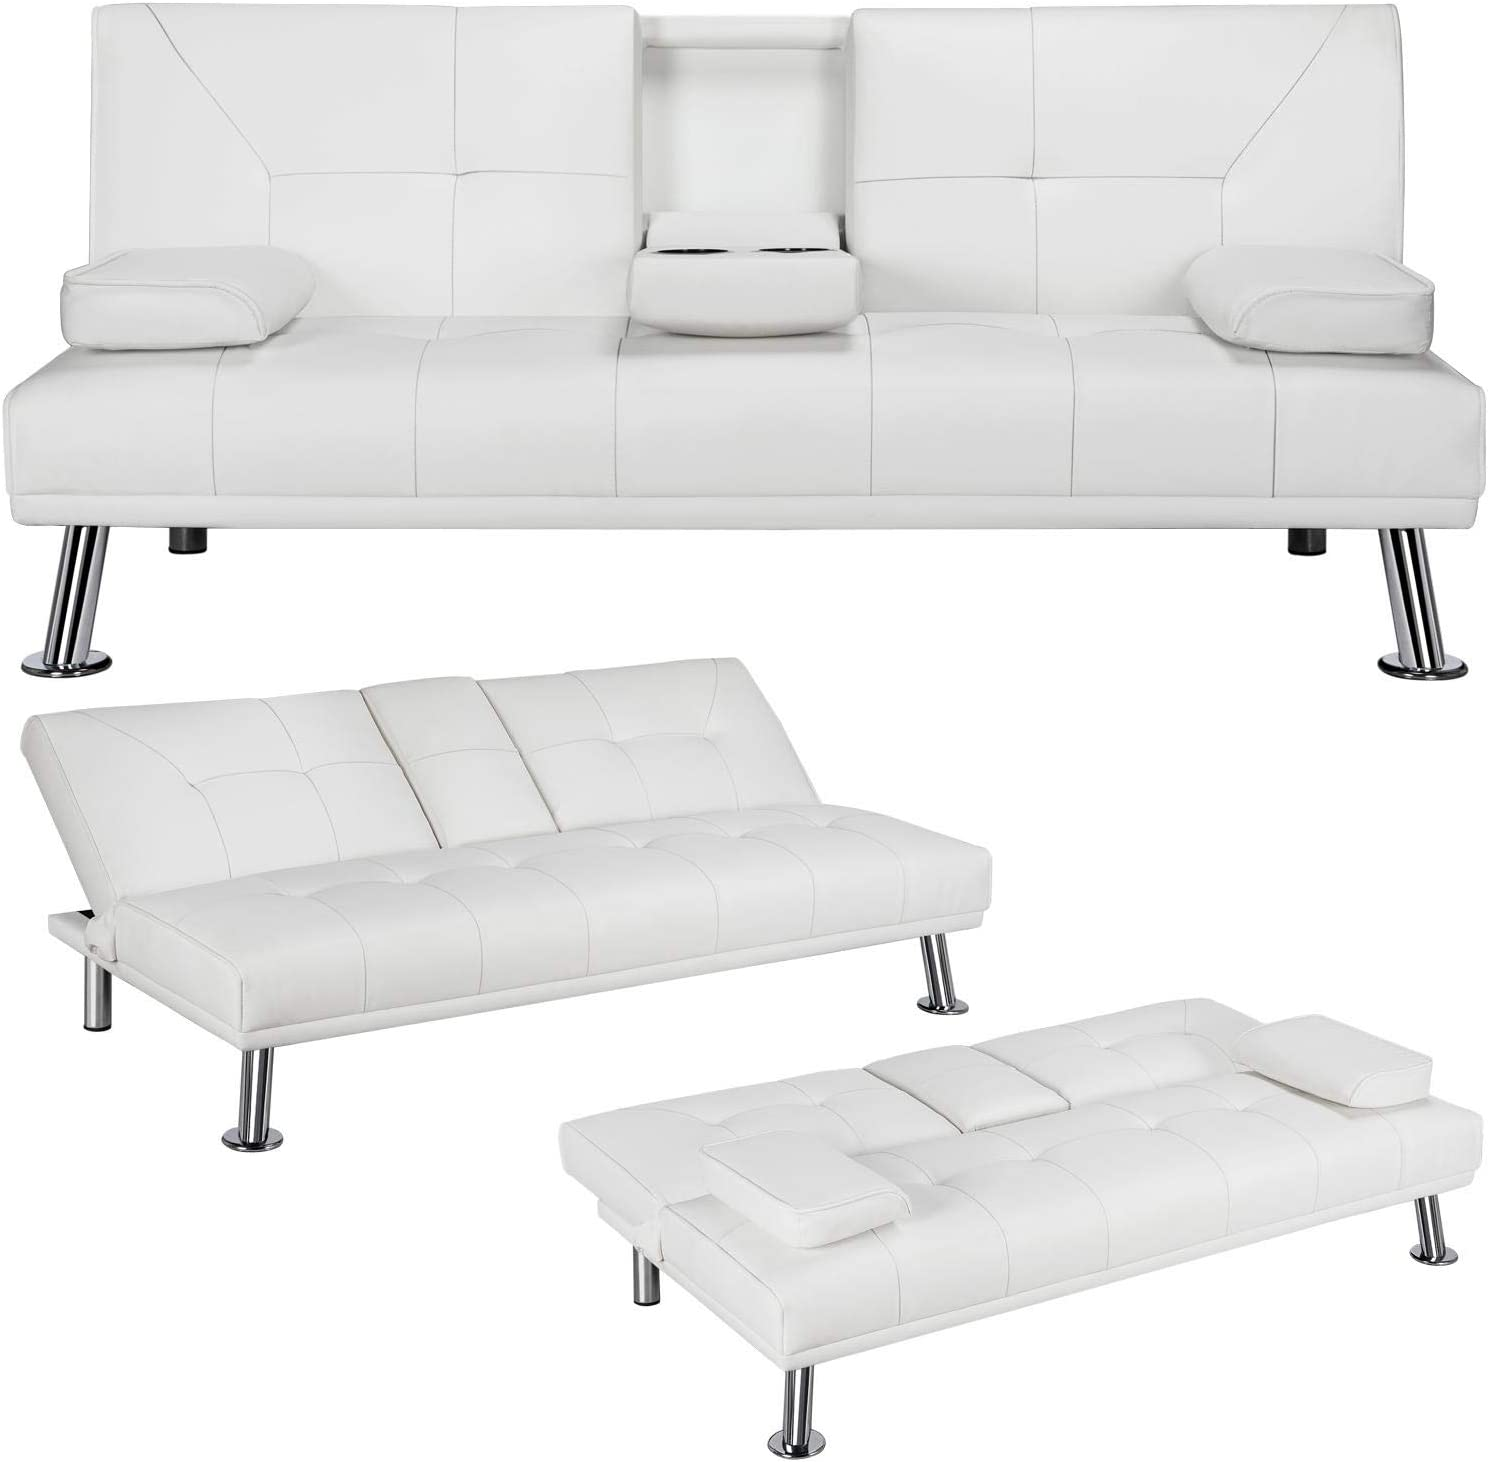 Amazon.com: YAHEETECH Futon Sofa Bed Sleeper Sofa Modern Faux Leather Futon Convertible Sofa With Armrest Home Recliner Couch Home Furniture White: Home & Kitchen